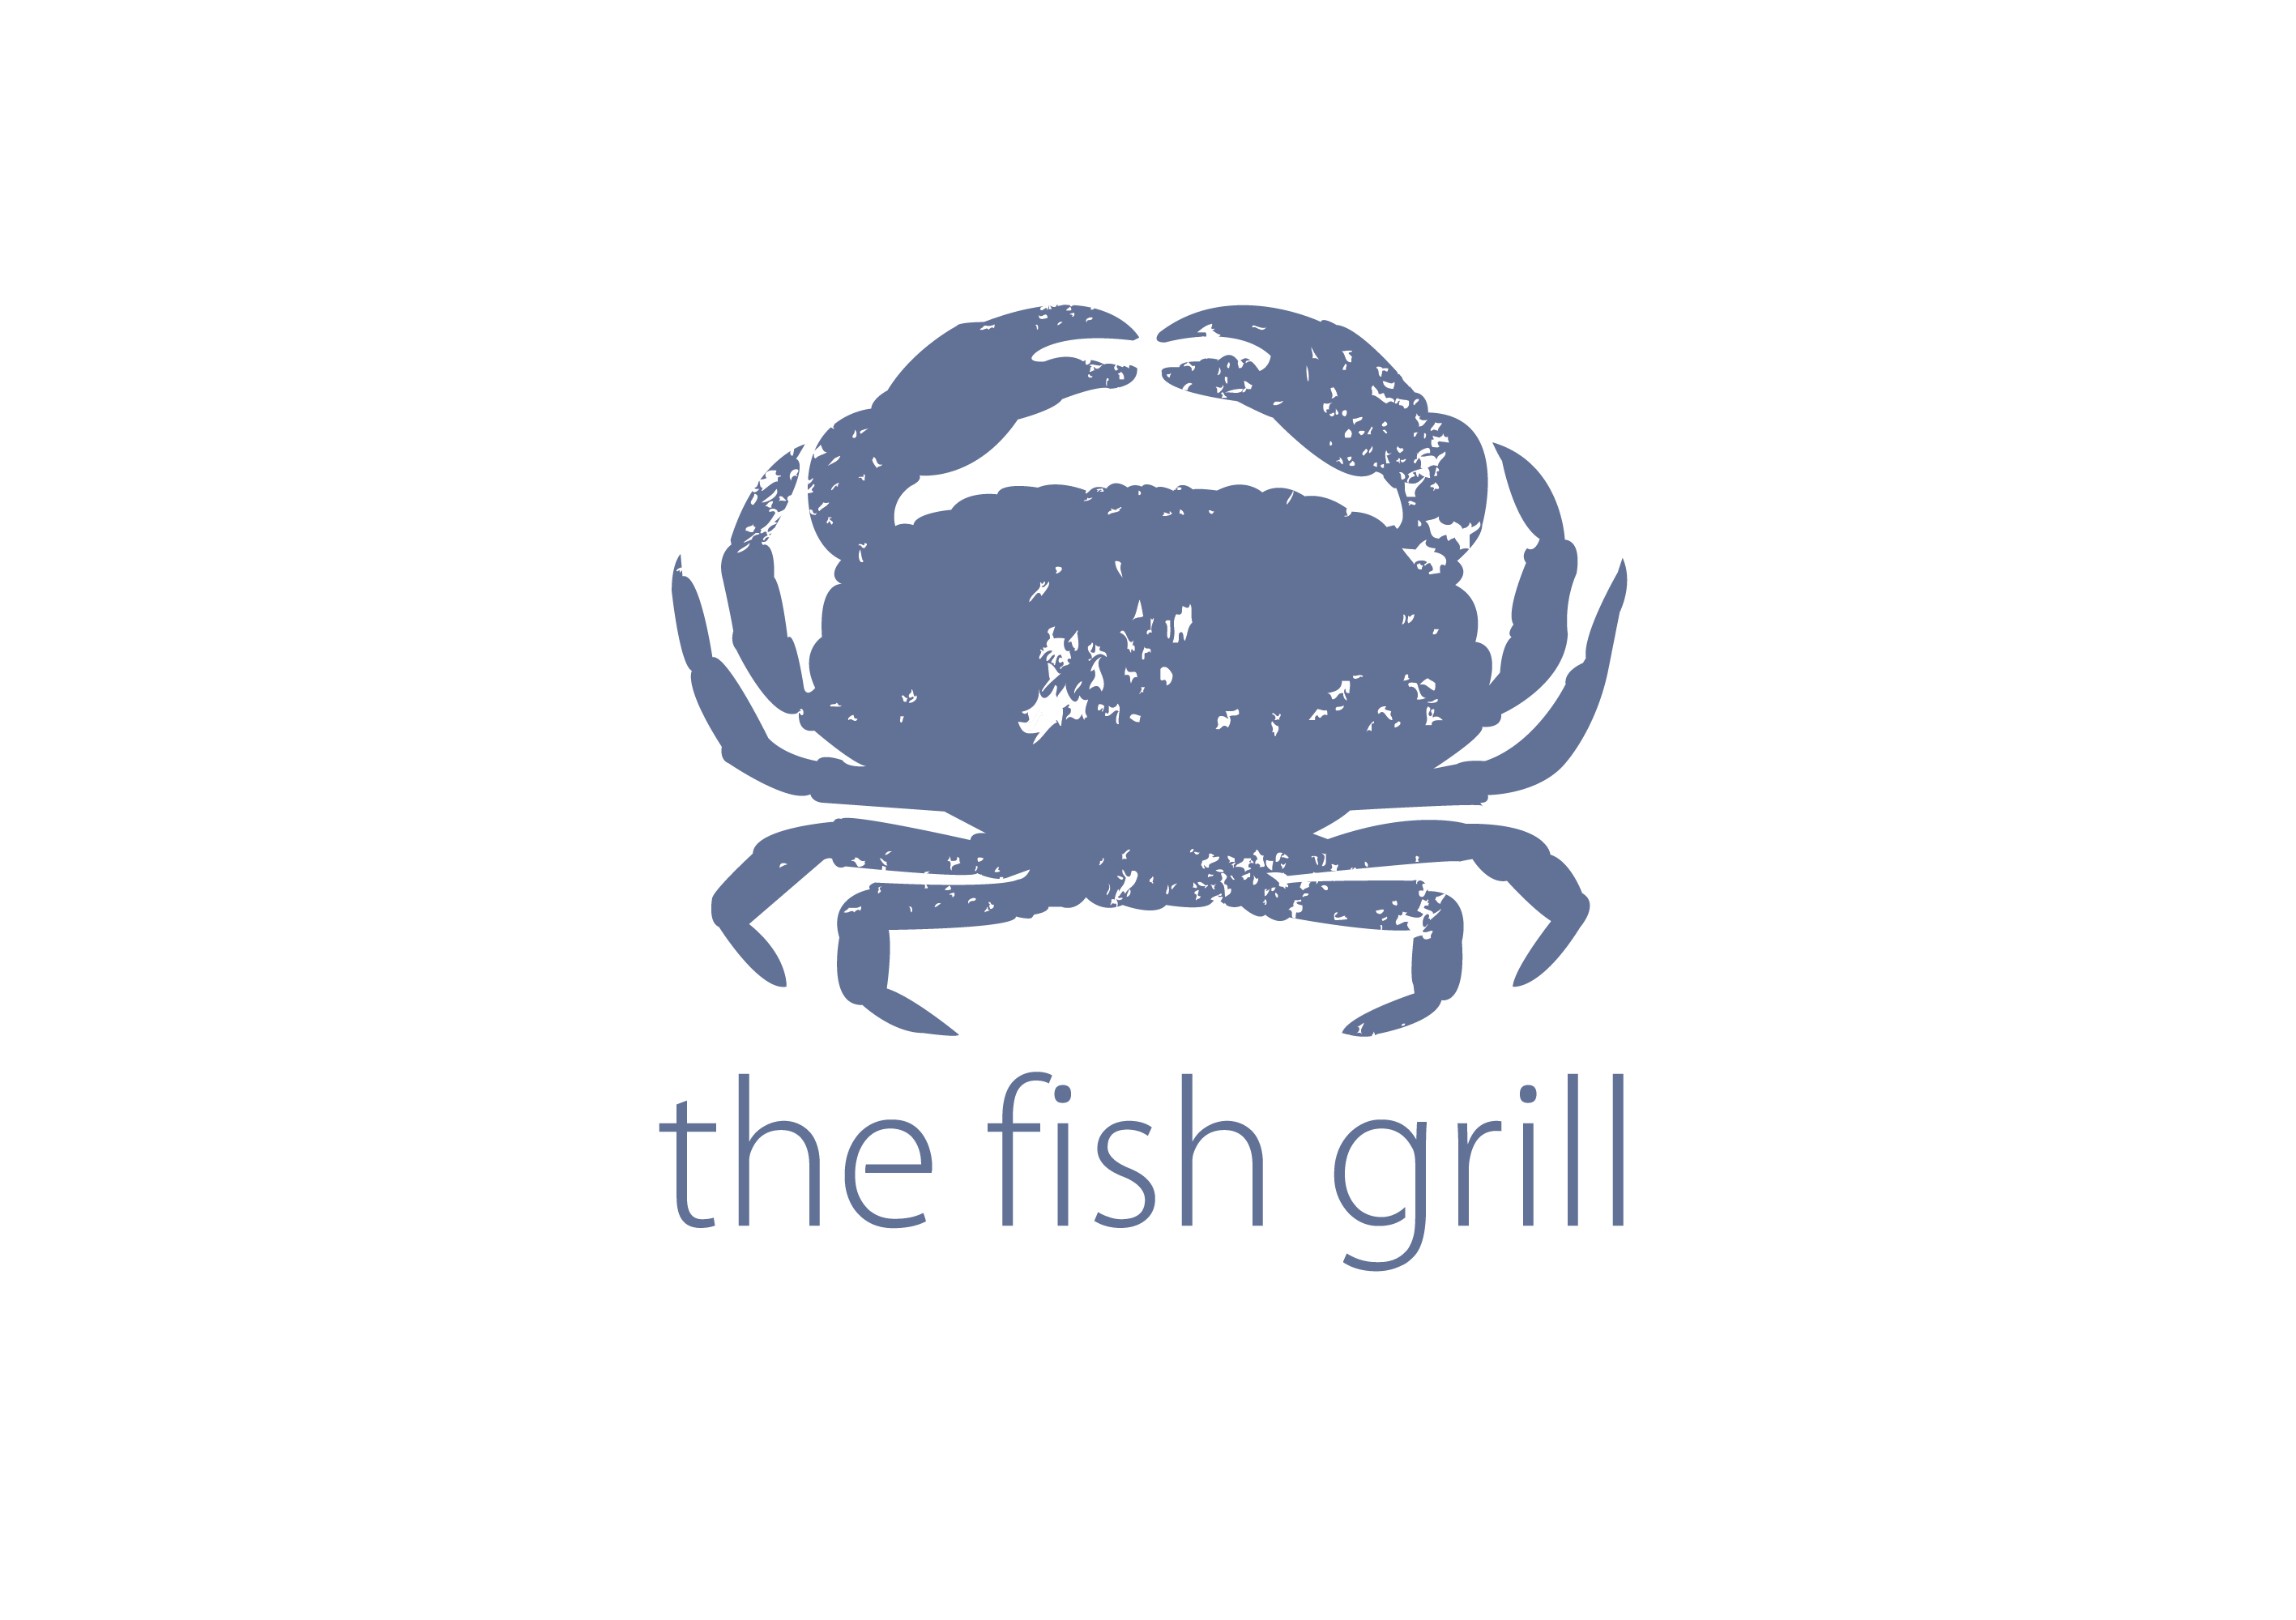 The Fish Grill Visual Identity